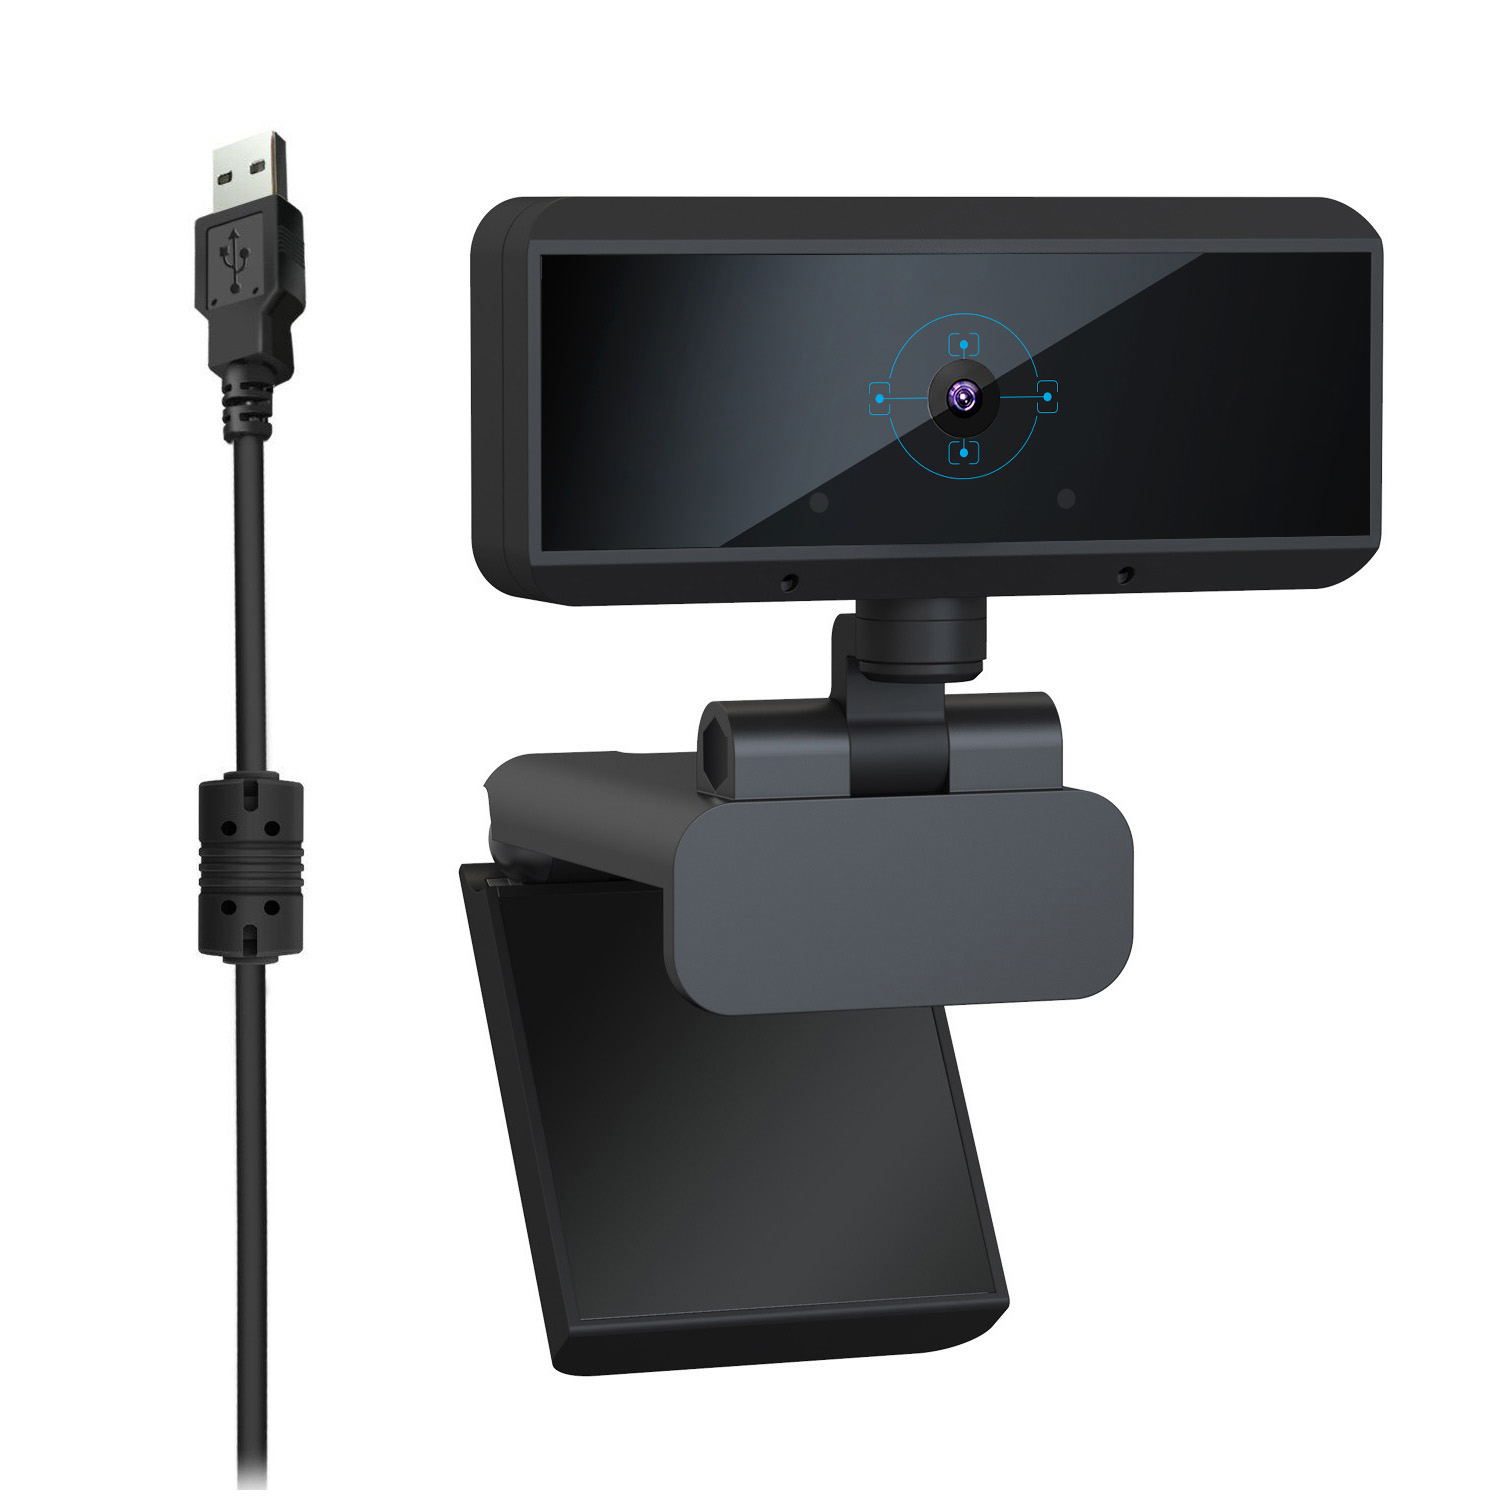 Full HD 1080P 30fps 5M Pixels USB Webcam with Microphone Auto Focus Computer Peripheral Web Camera for Youtube PC Laptop Web Cam